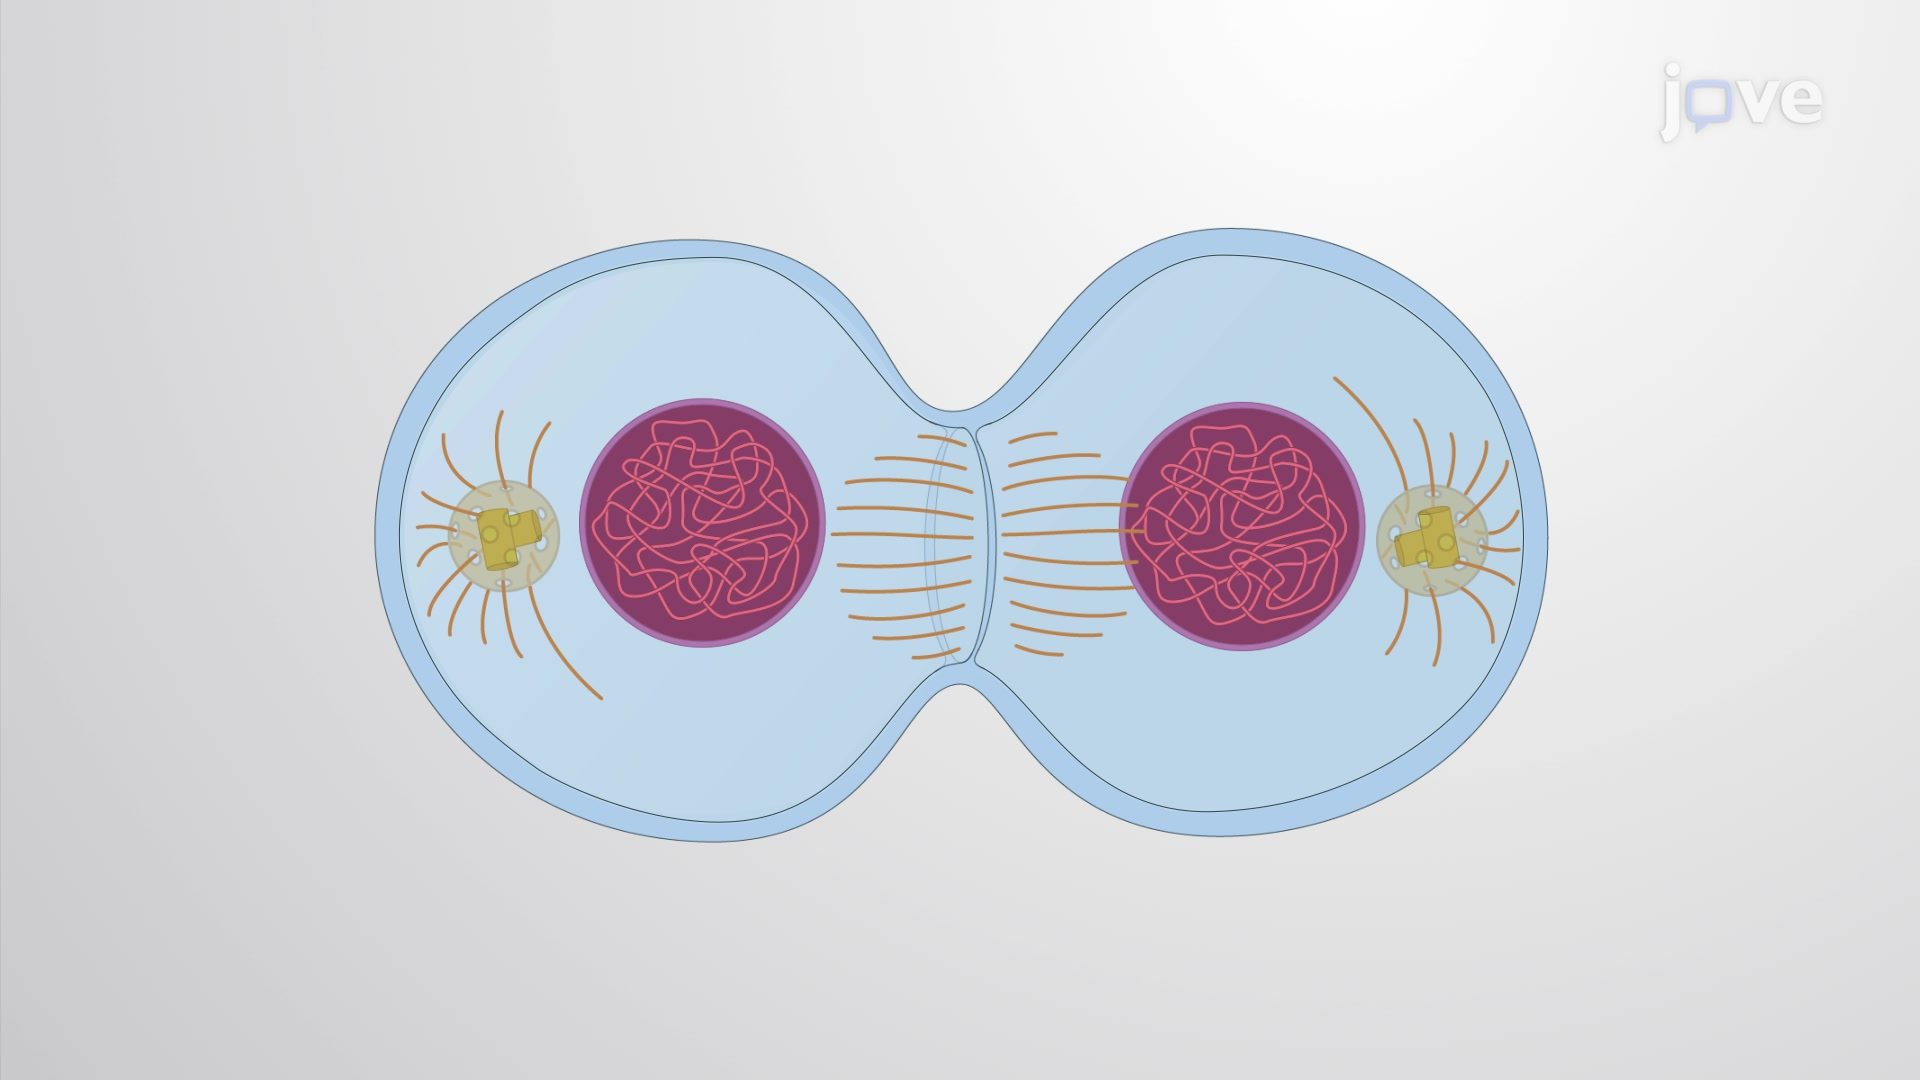 Determining the Plane of Cell Division